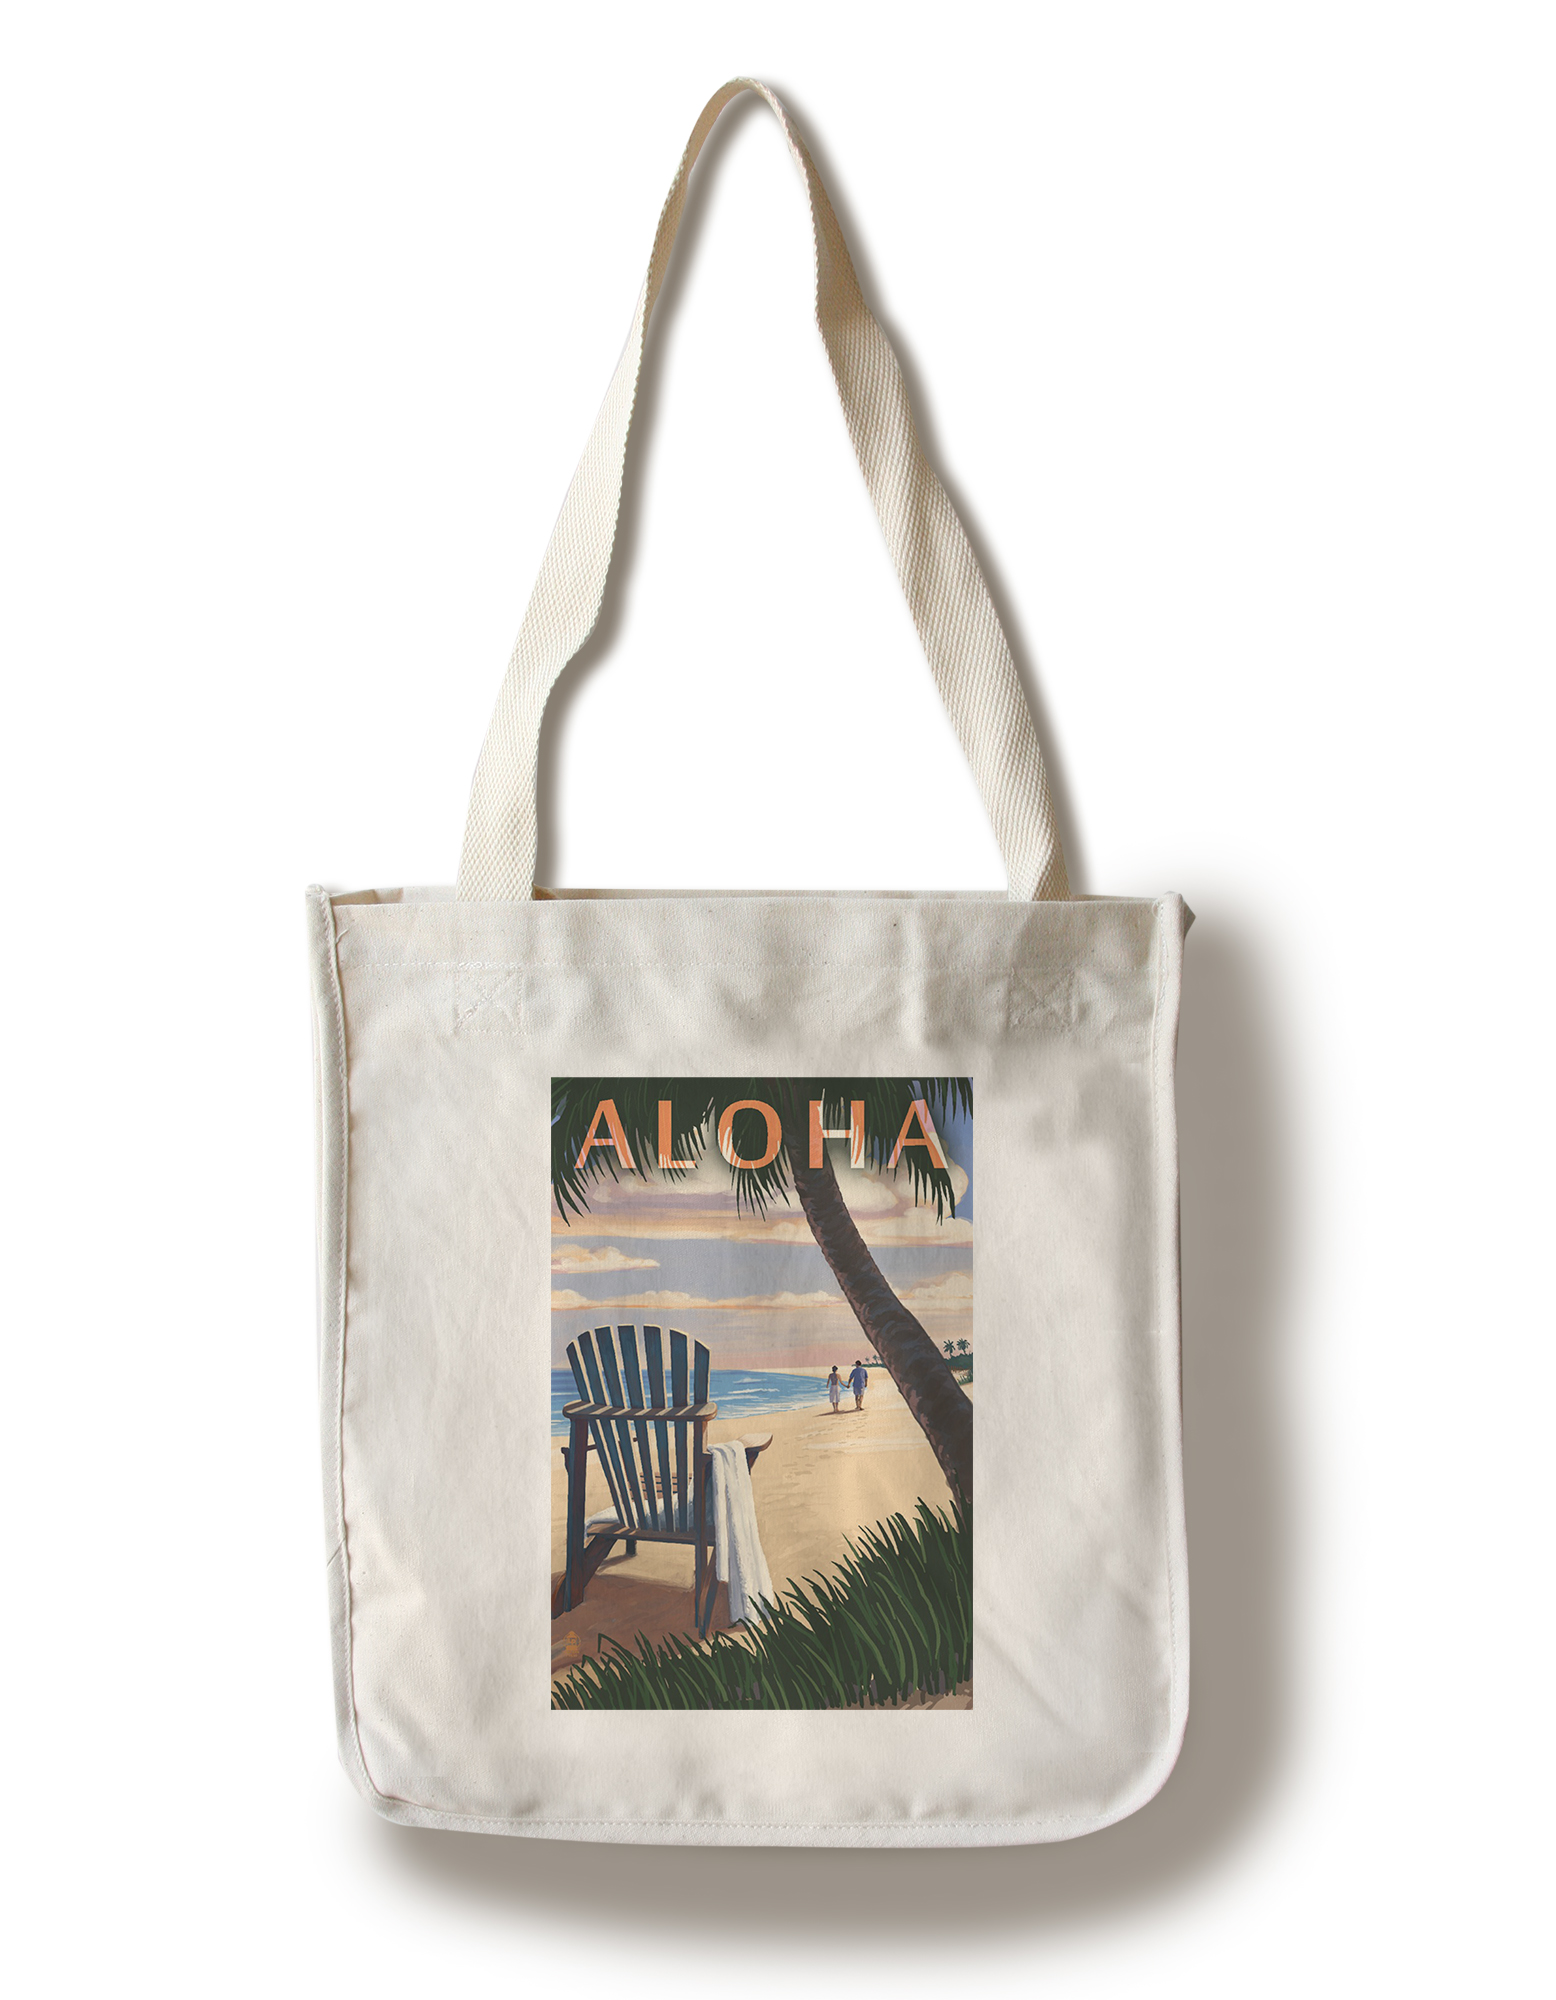 Adirondack Chairs & Sunset Aloha Lantern Press Artwork (100% Cotton Tote Bag Reusable) by Lantern Press